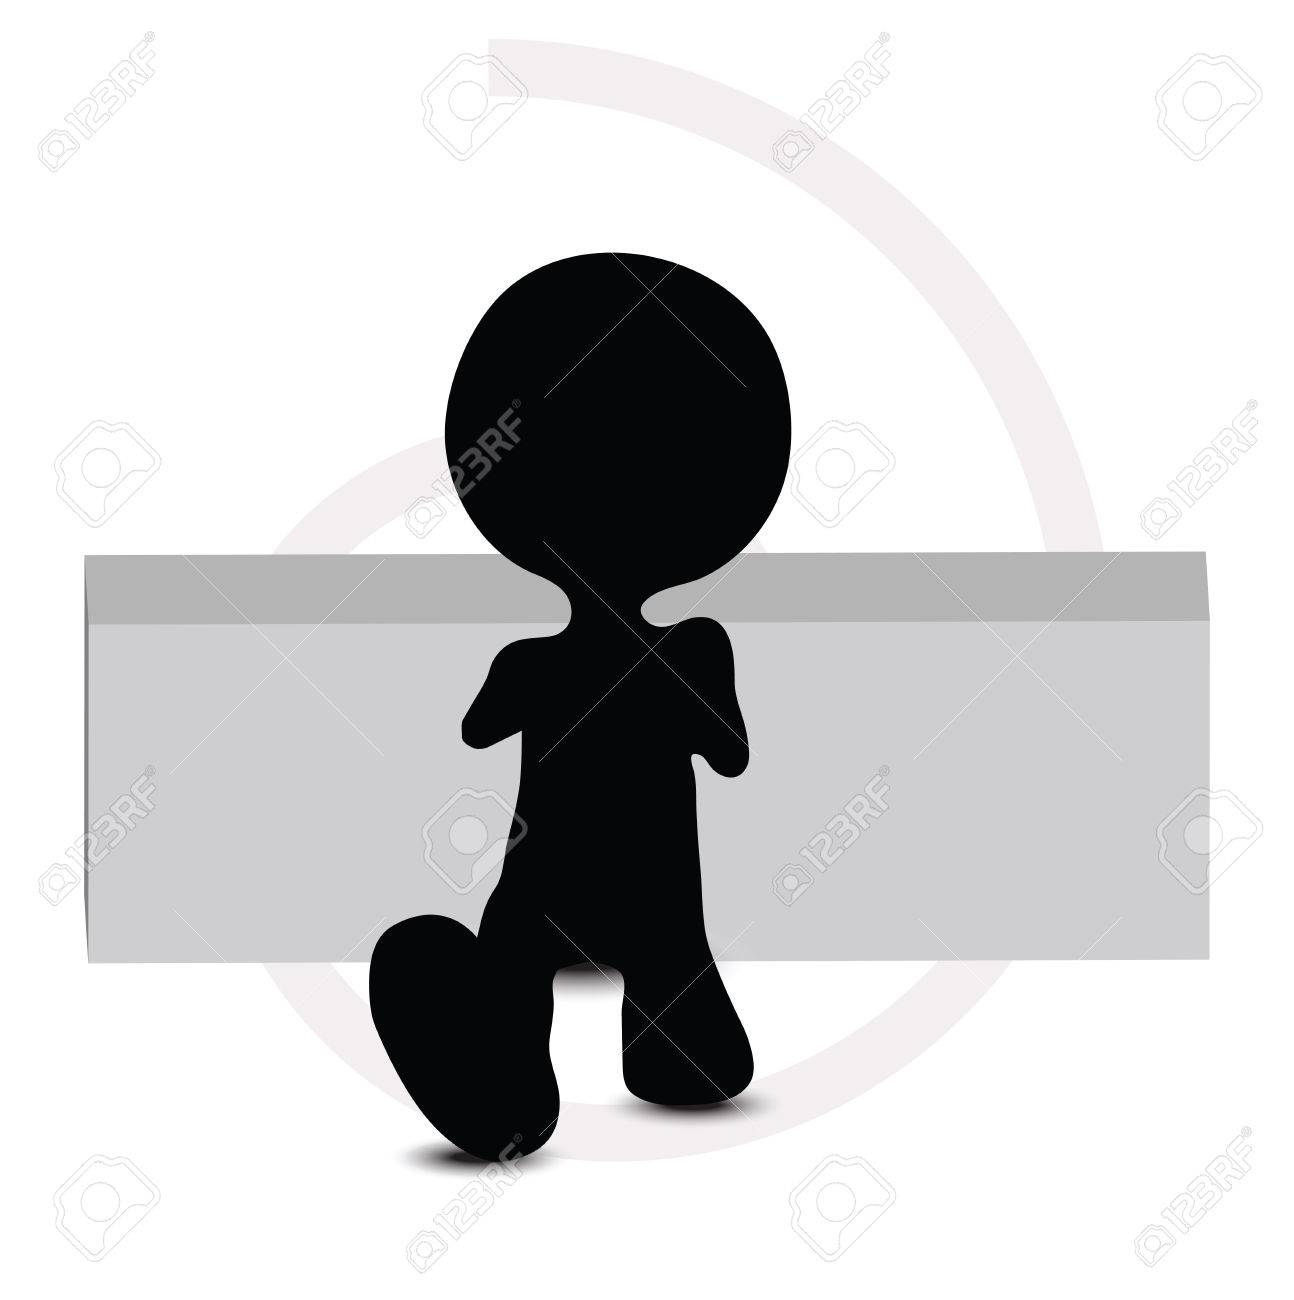 3d man in sitting pose Stock Vector - 29985145